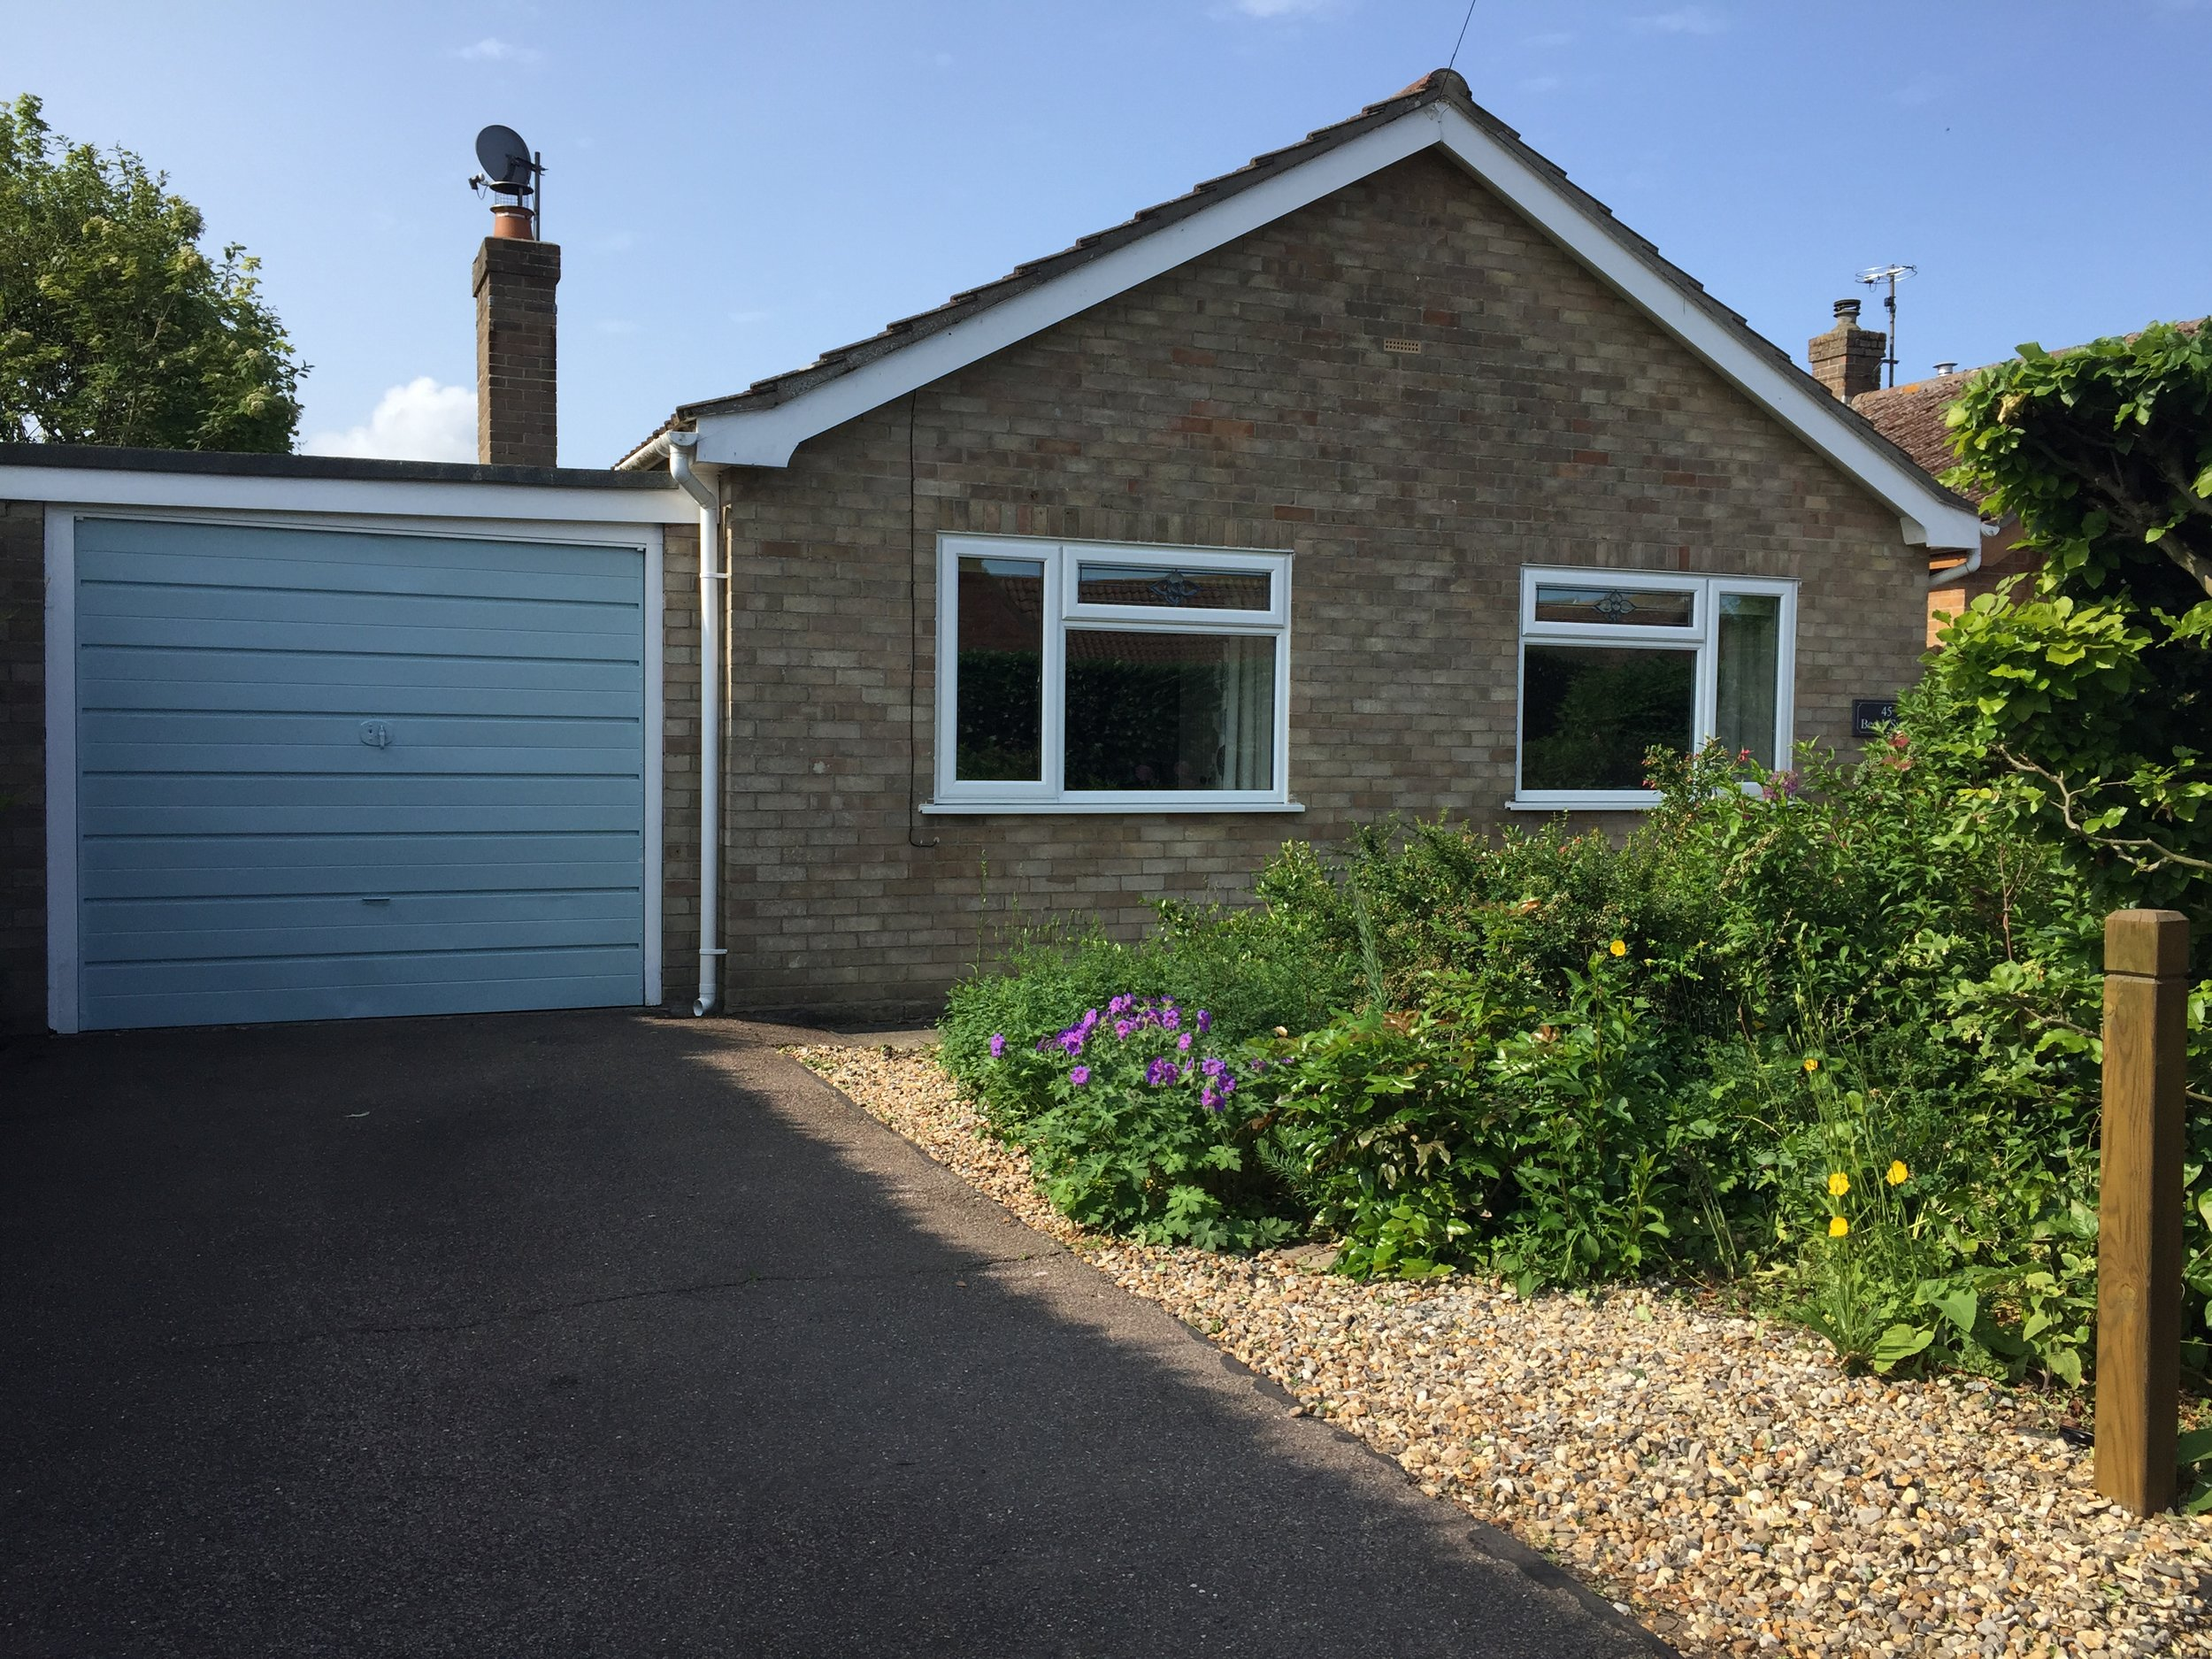 Beech Syde - Beech Syde is a detached bungalow situated in a quiet cul-de-sac with 'off road' parking.The accommodation and garden, being all on one level, is ideal for those with limited mobility.